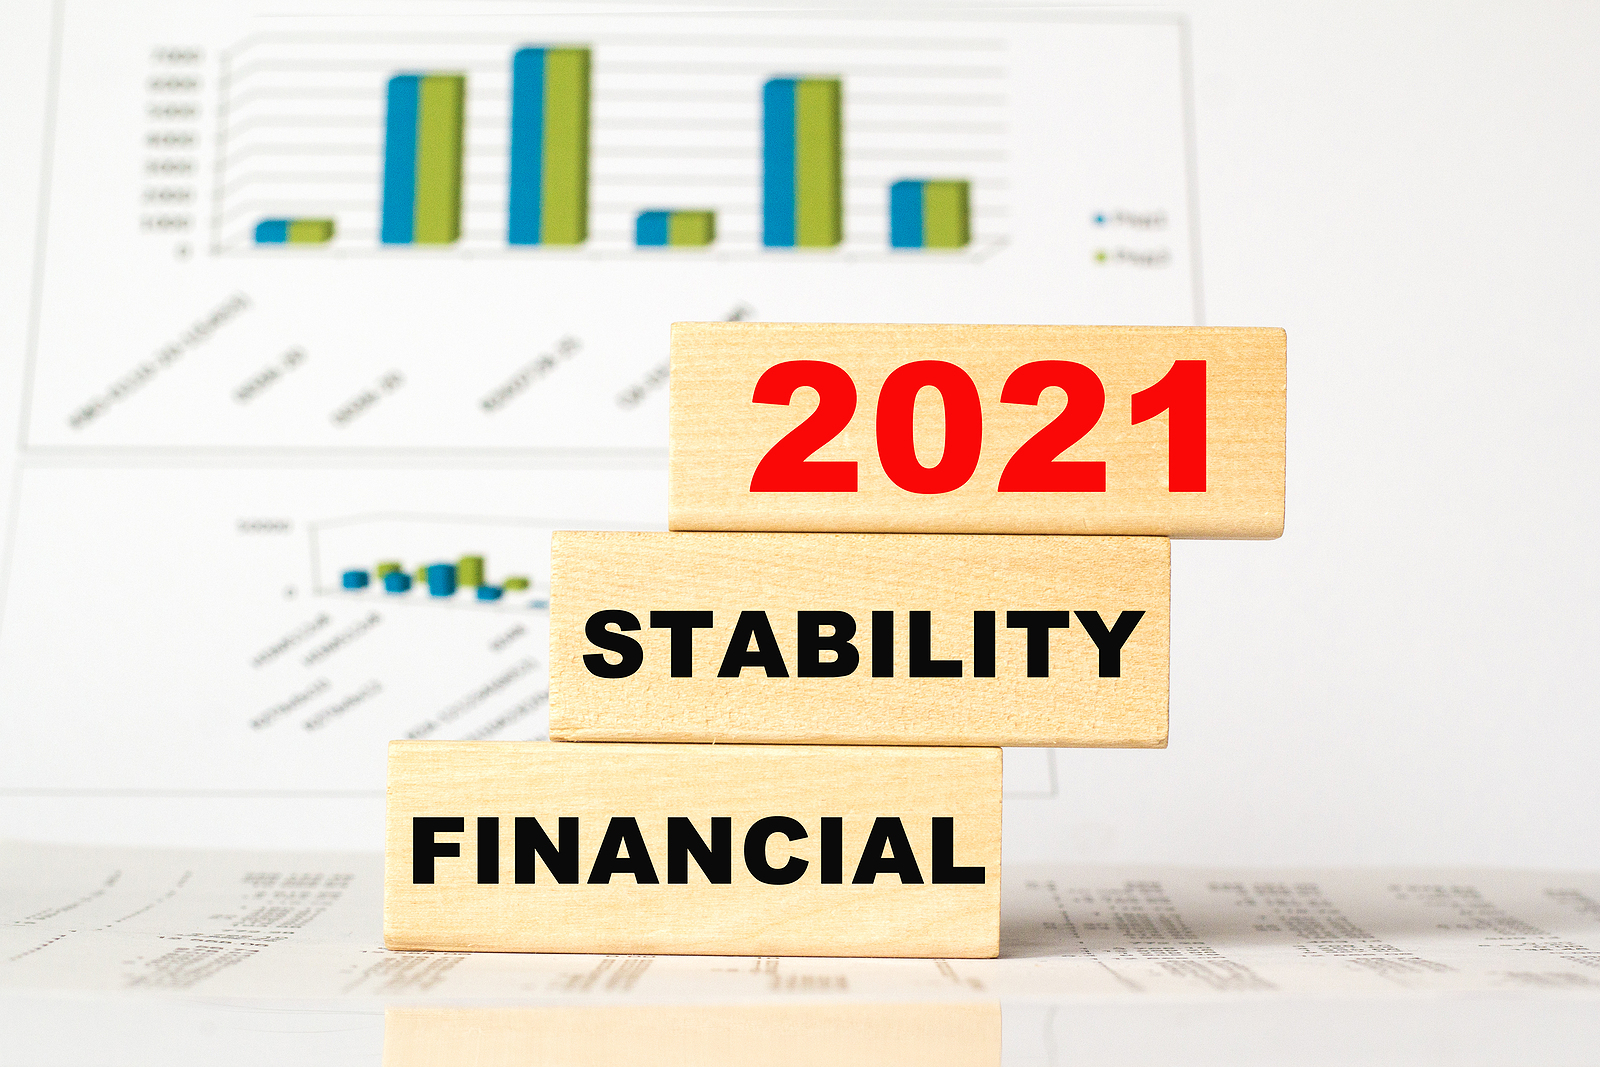 small-business-financial-stability-2021-myrick-cpa-dc